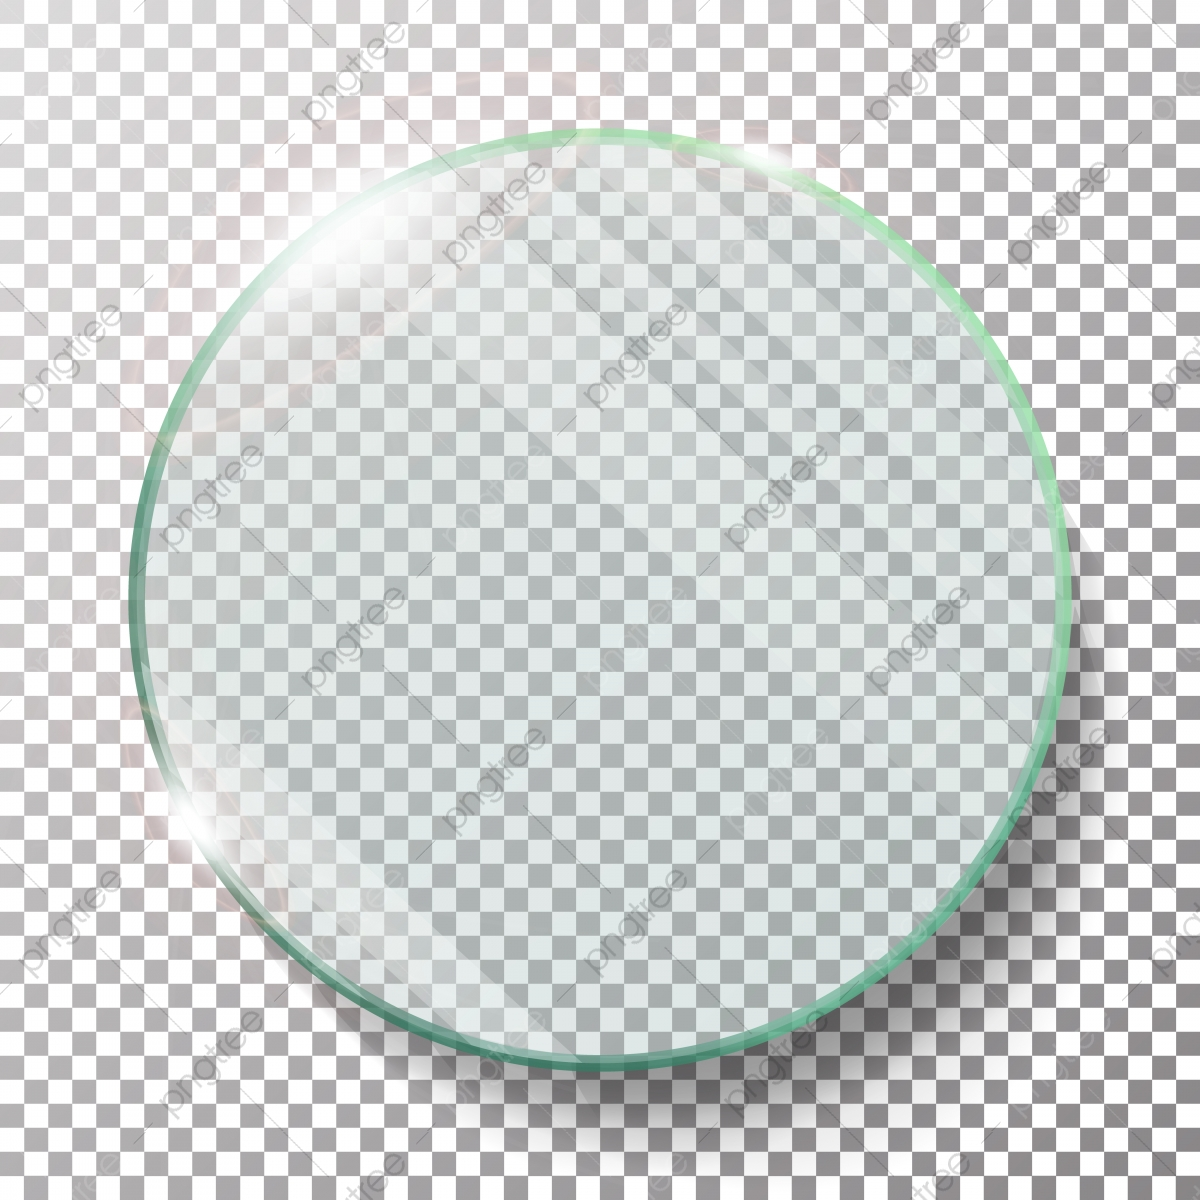 Glasses Png Images Vector And Psd Files Free Download On Pngtree Find & download free graphic resources for glass. https pngtree com freepng transparent round circle vector realistic illustration flat glass circle glass plate transparency 5221874 html